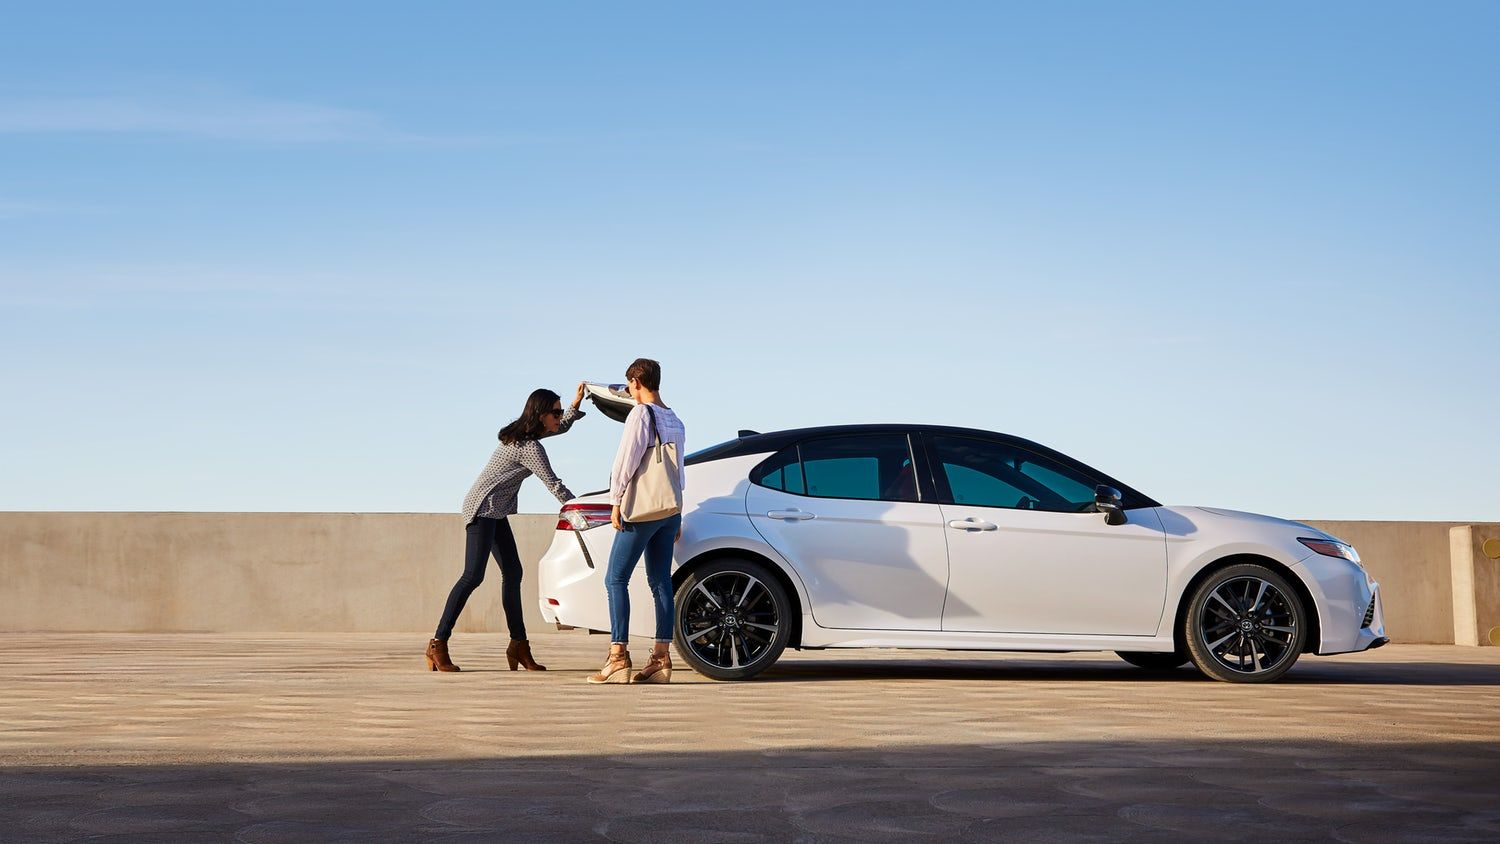 View Toyota Camry exterior photos and get ready to elevate